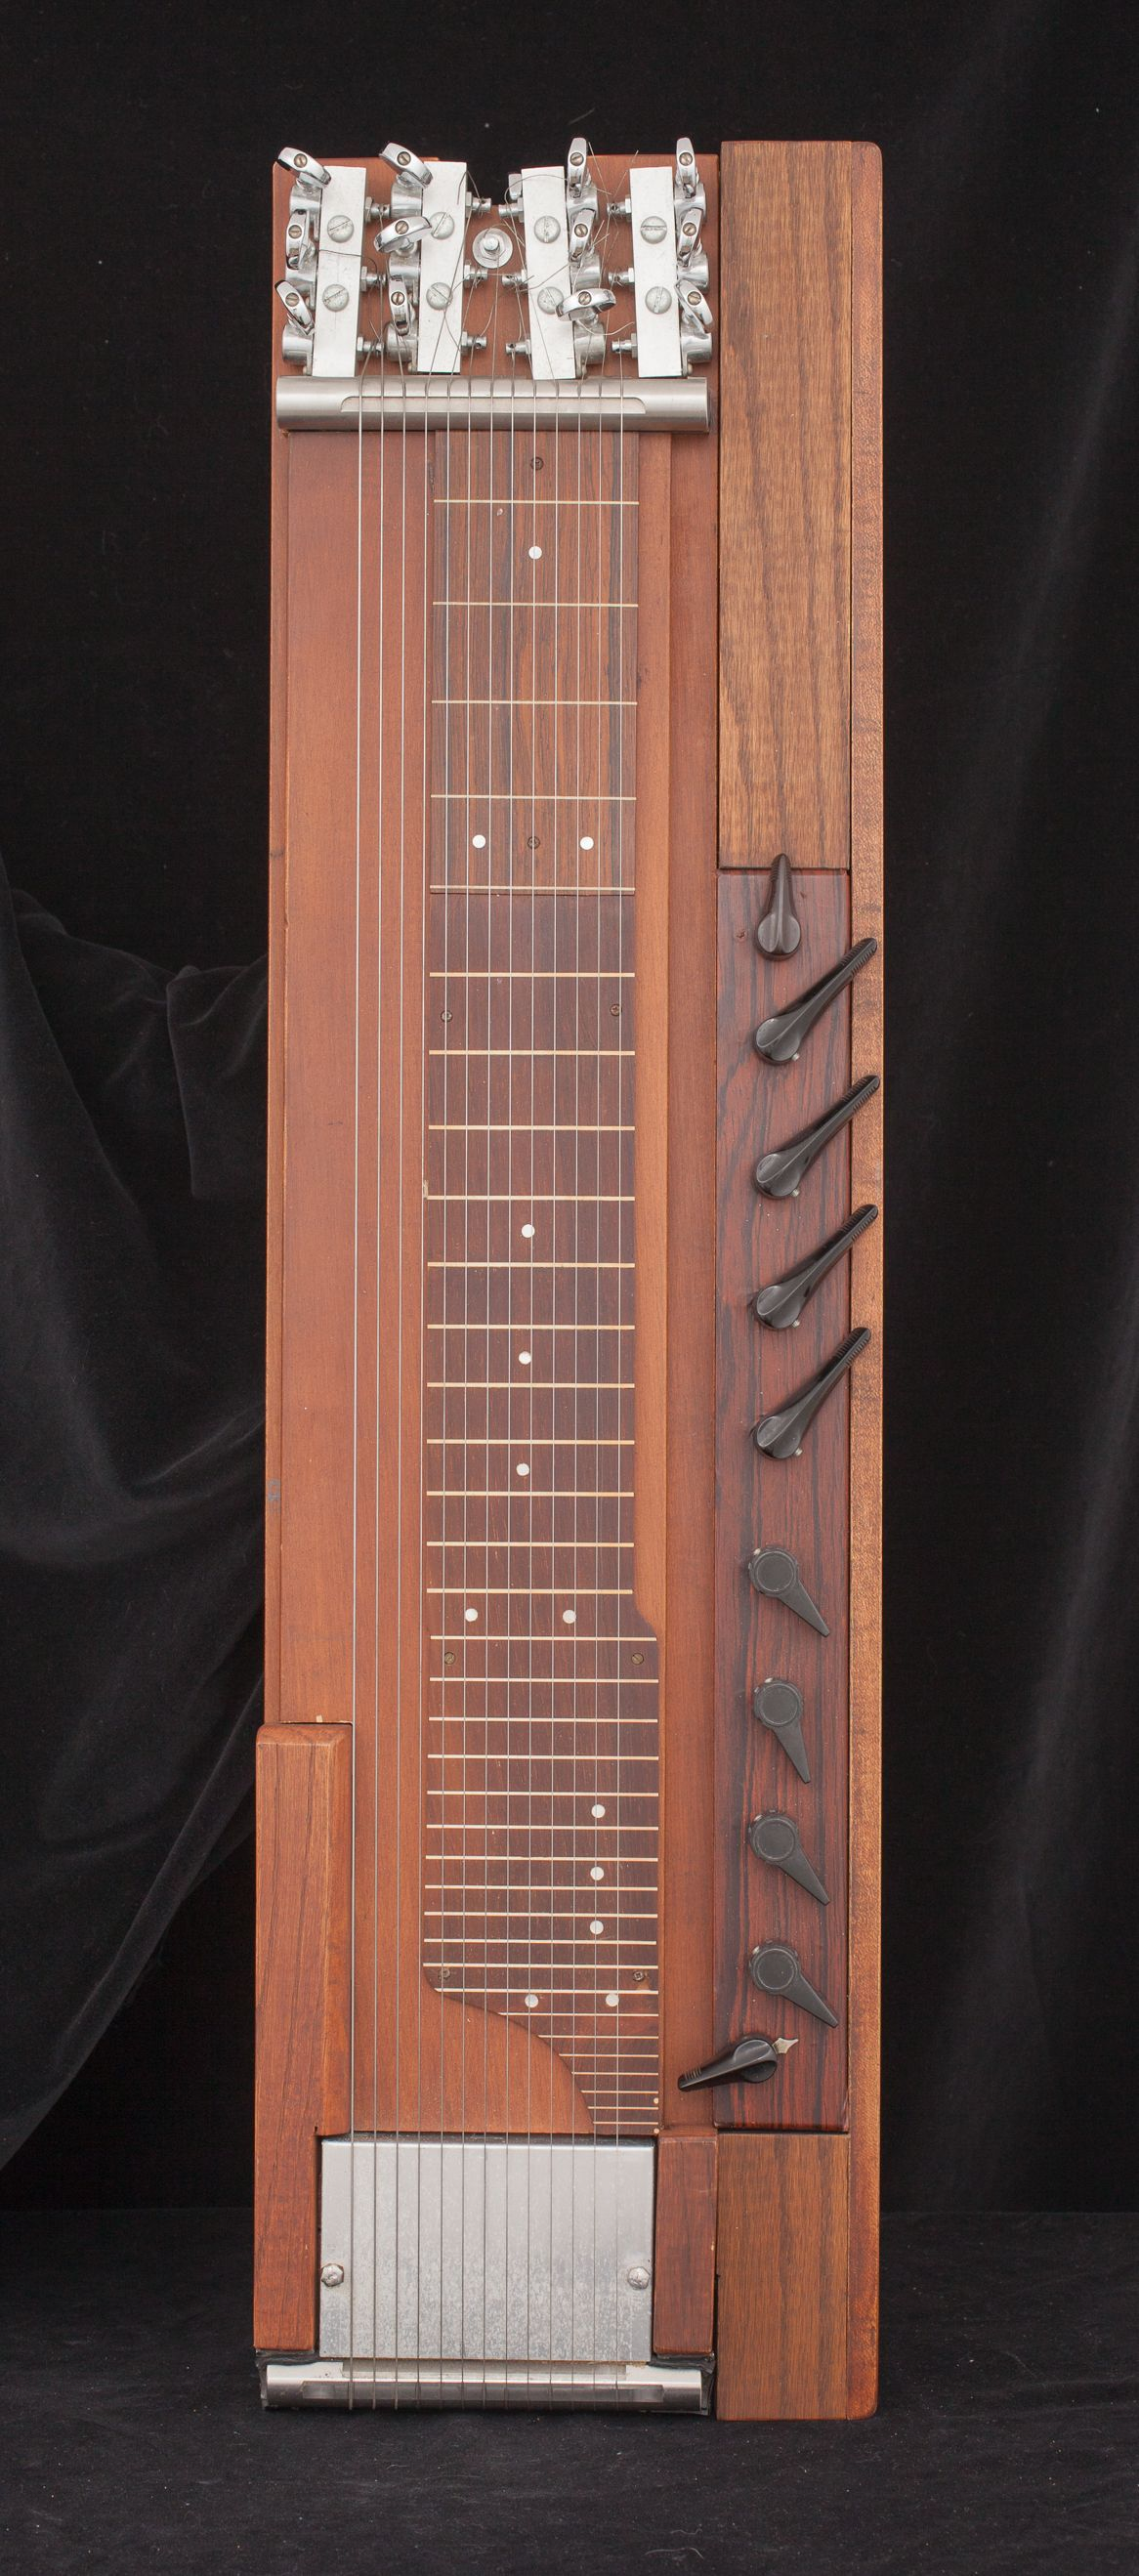 Rectangular experimental guitar made of wood. Right side has 10 levers, there are 12 strings in the center, and a metal plate at the bottom.